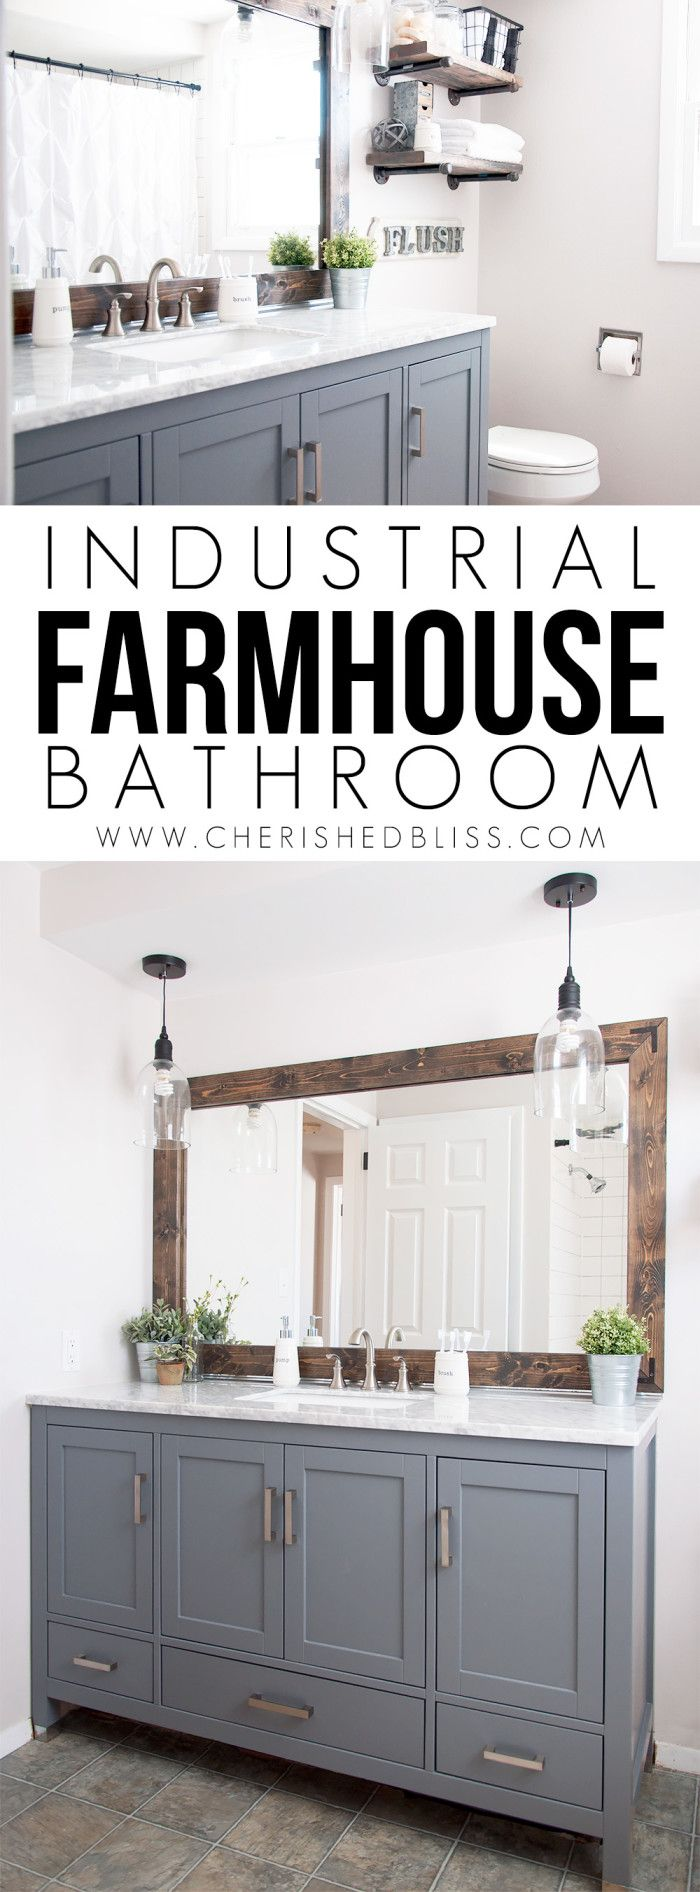 25 best large bathroom mirrors ideas on pinterest inspired industrial farmhouse bathroom reveal